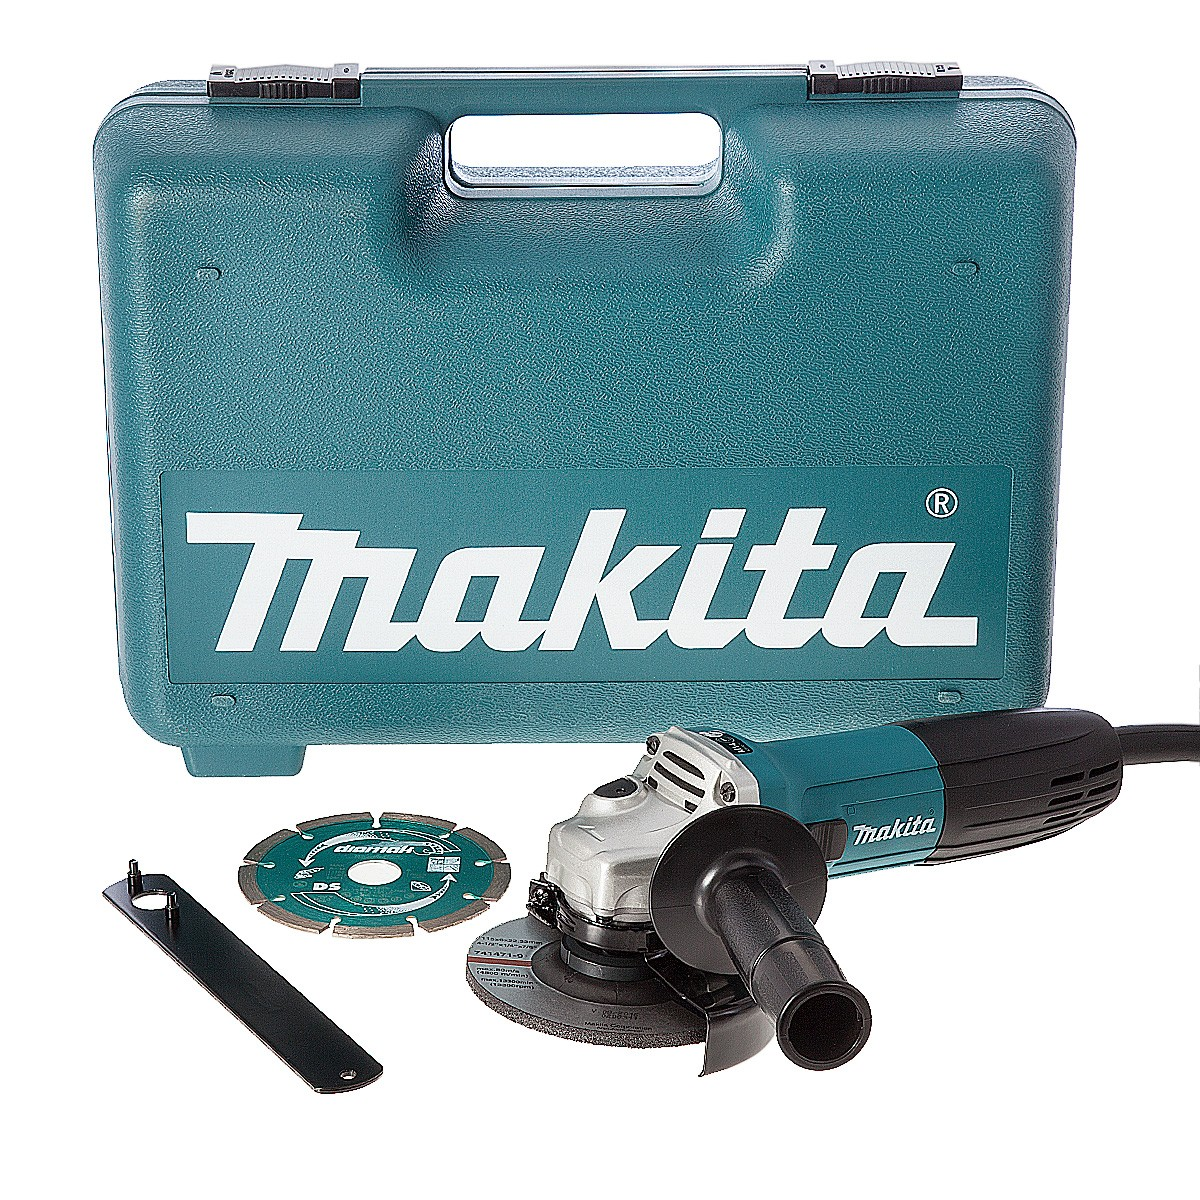 Makita GA4530KD 115mm Angle Grinder with Diamond Blade & Carry Case